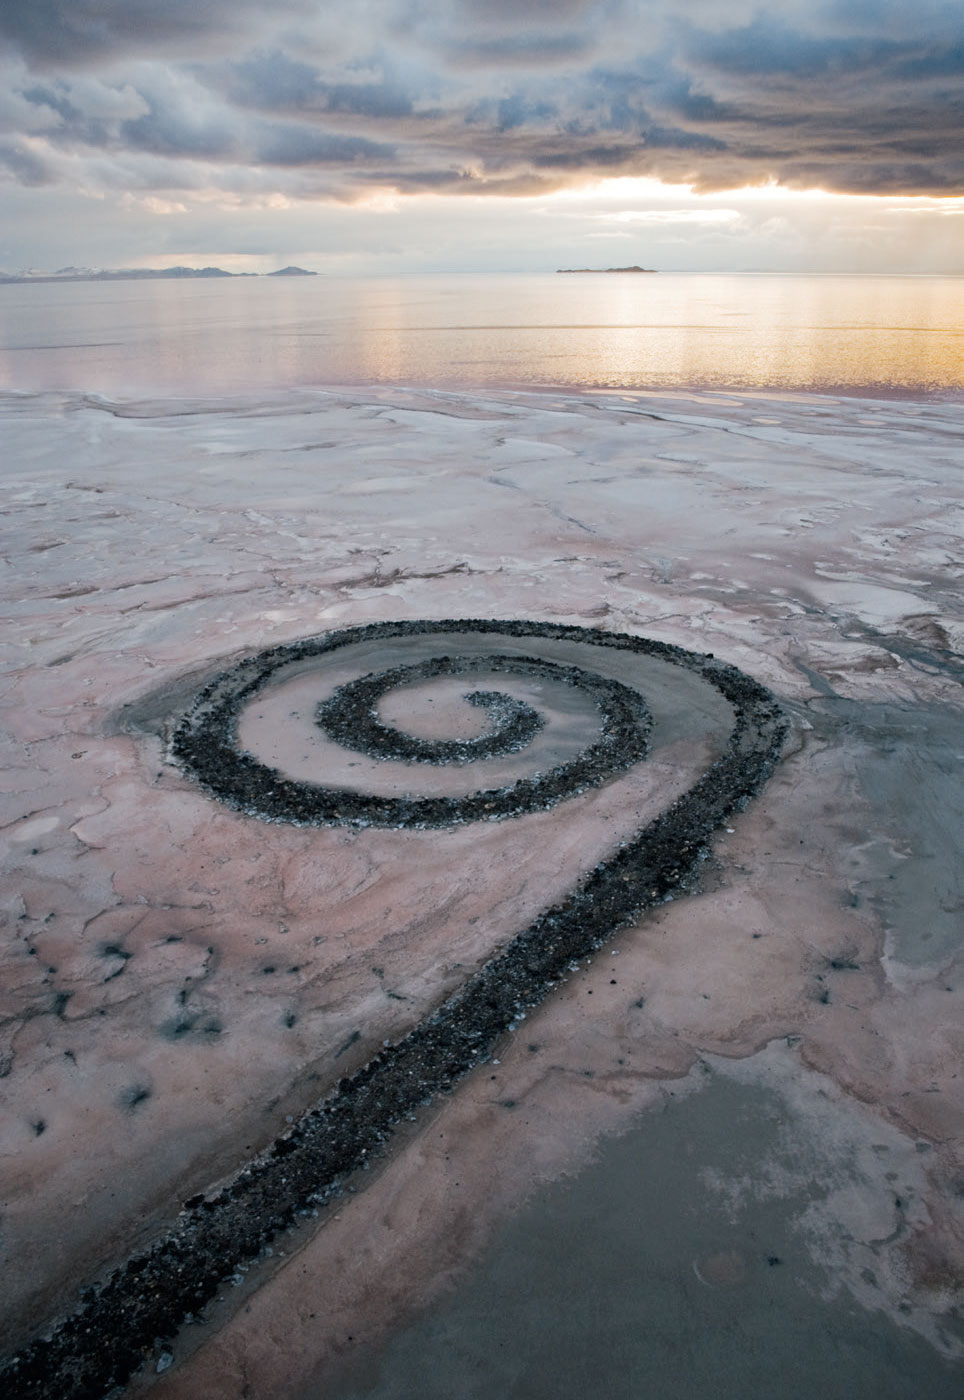 Spiral Jetty (1970) by Robert Smithson. As featured in Art & Place and Destination Art